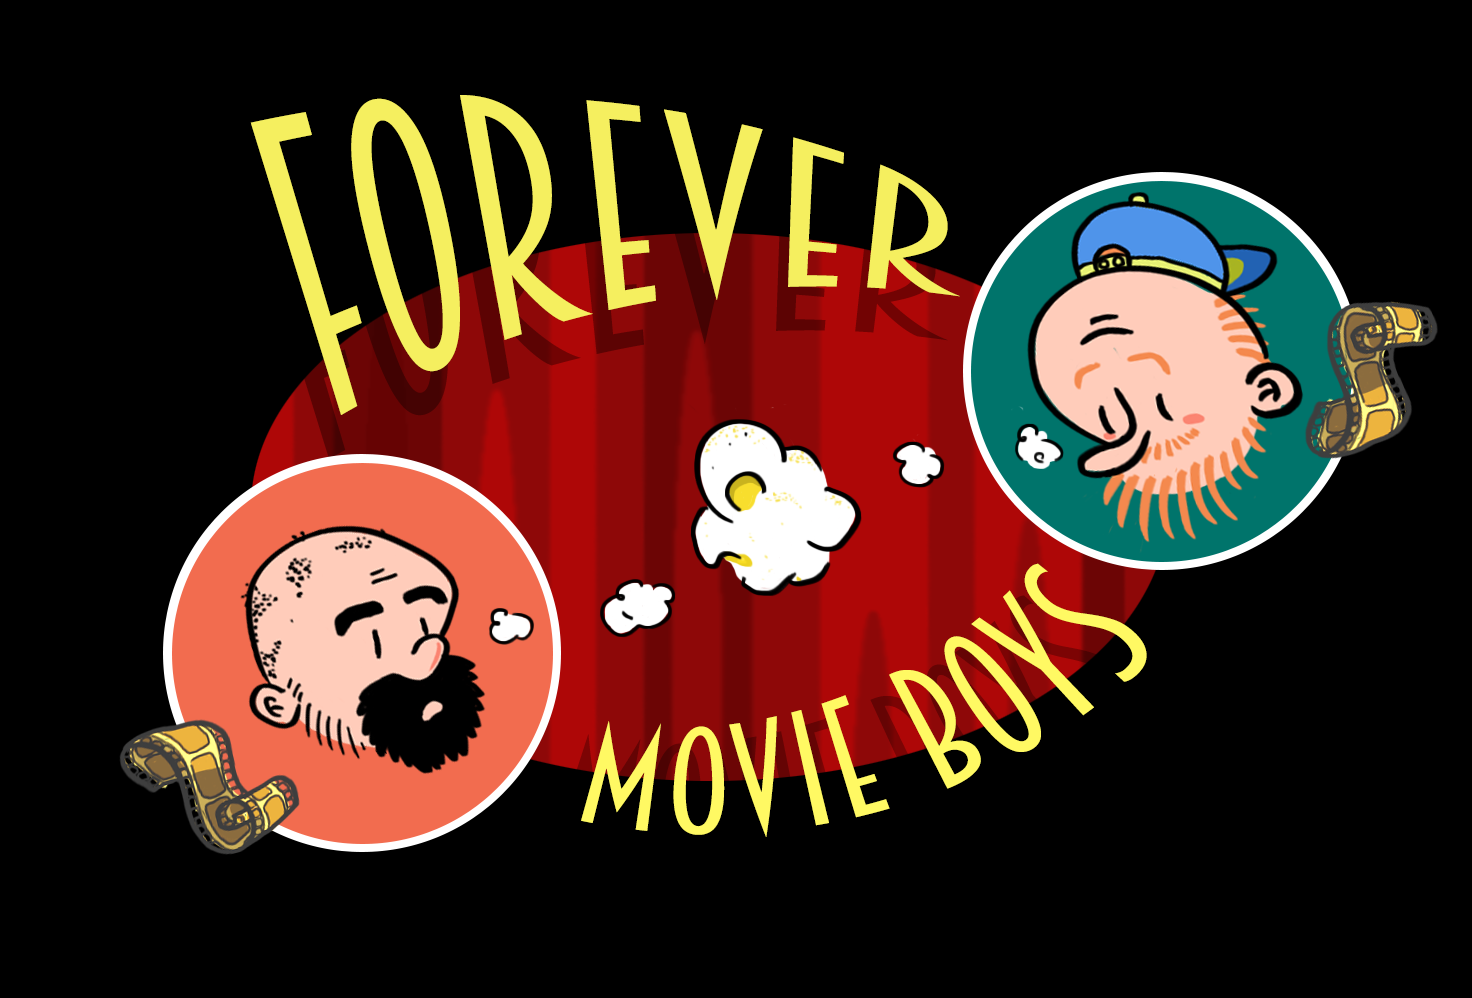 FOREVER MOVIE BOYS    The Forever Movie Boys podcast brings you film discussion and reviews through the eyes of two ex-film students. Listen on as Maciej and Tobias (probably the coolest names in podcast history) riff on about films both new and old, unfiltered and honest, of course.